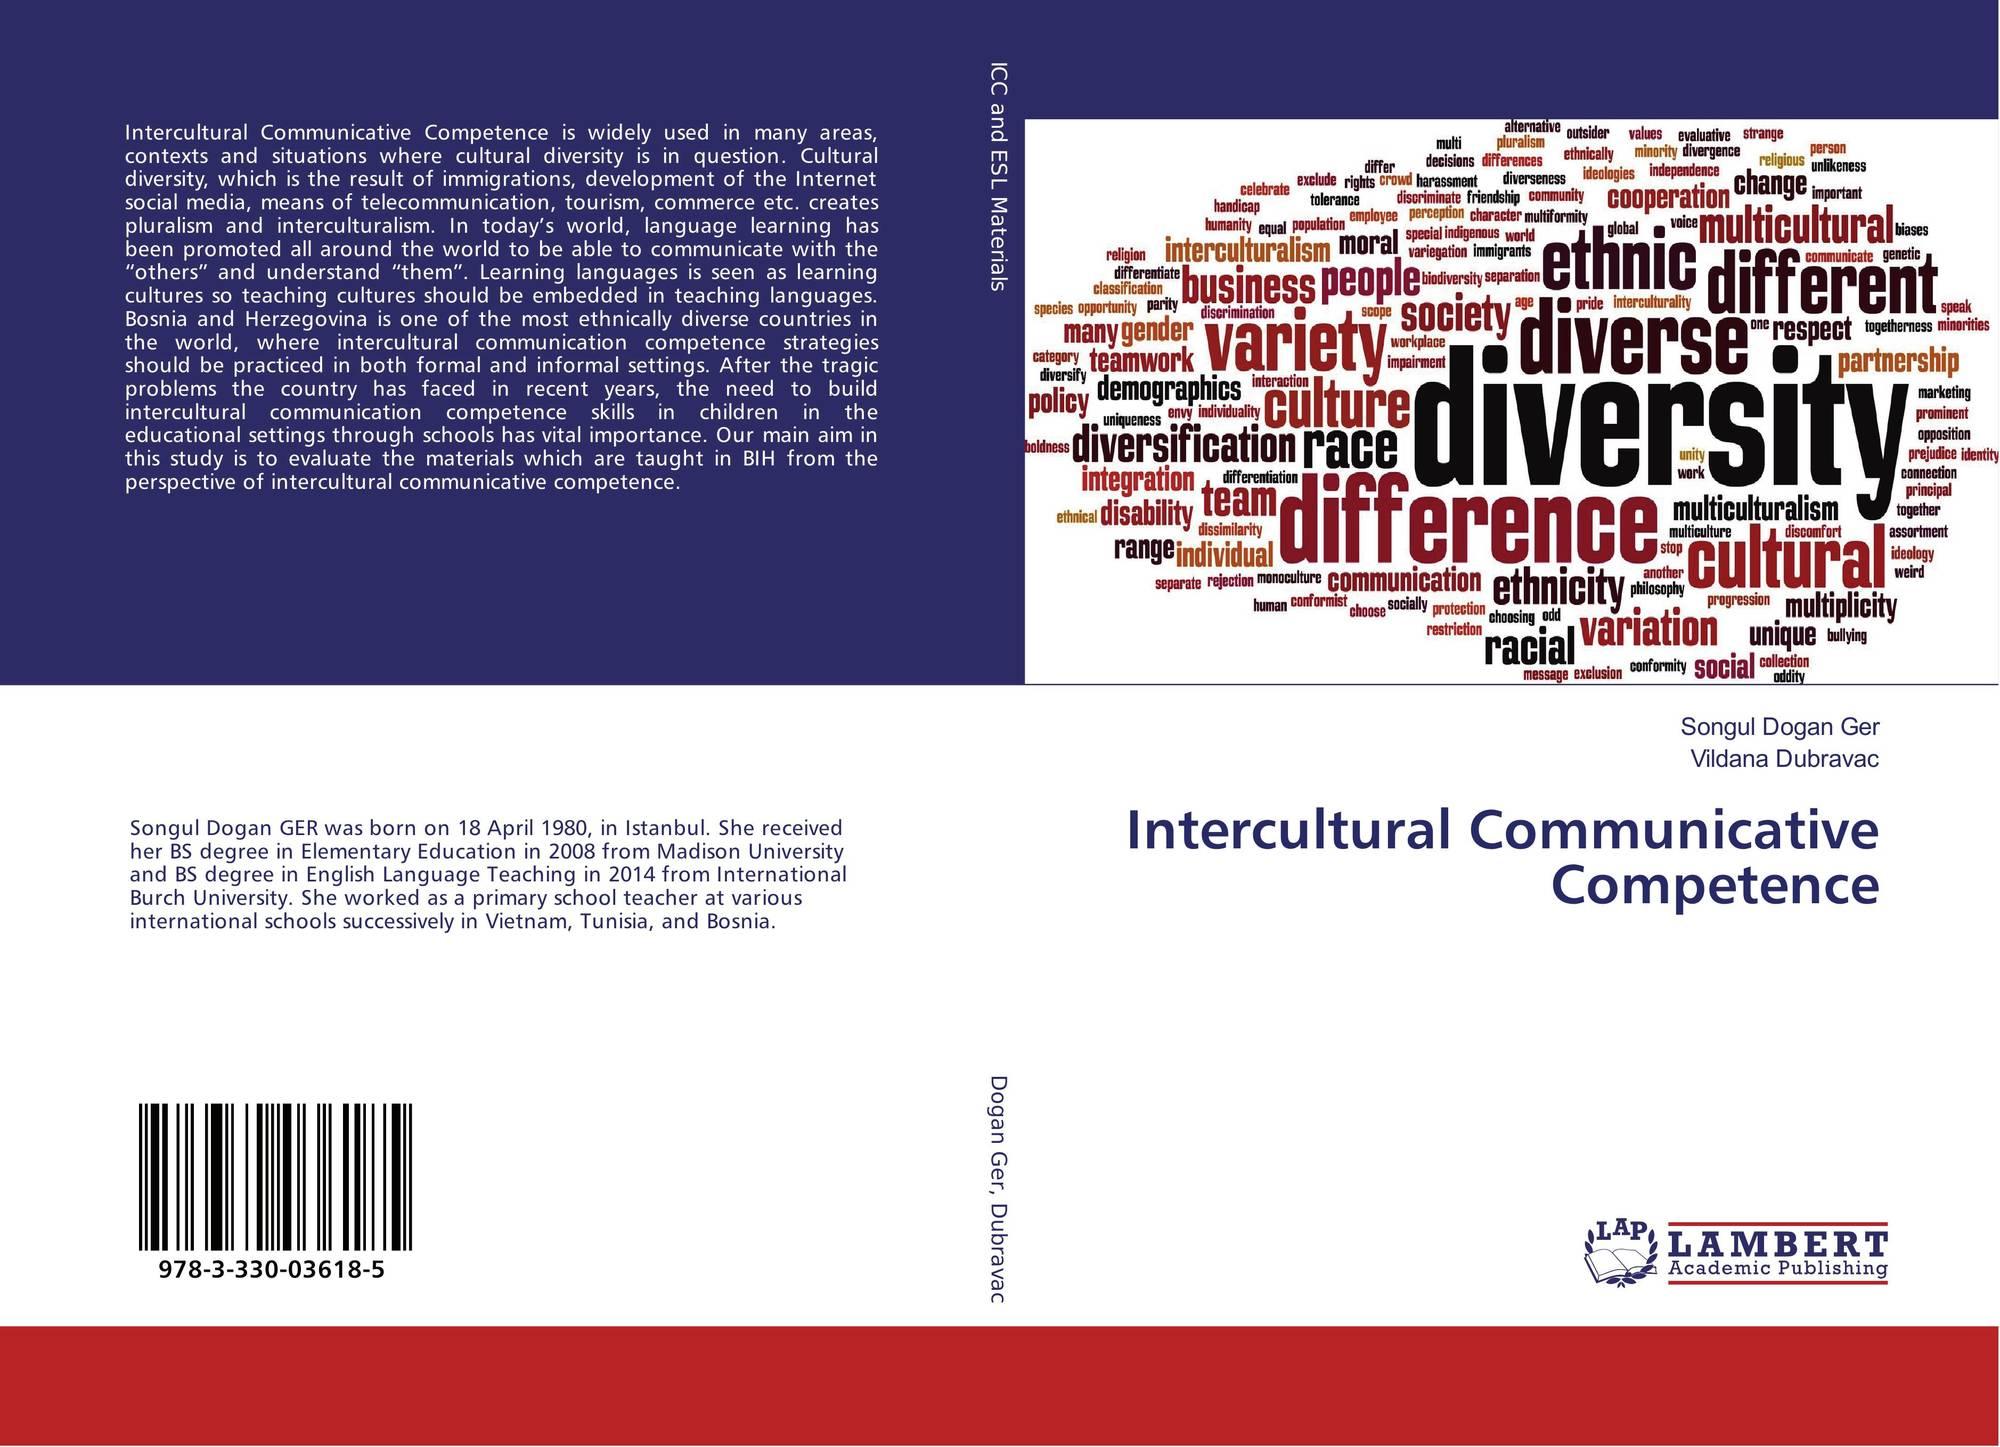 communication competence a malaysian perspective Yum, june ock communication competence: a korean perspective china media research, vol 8, no 2, 2012, p 11+academic onefile, accessed 28 mar 2018.